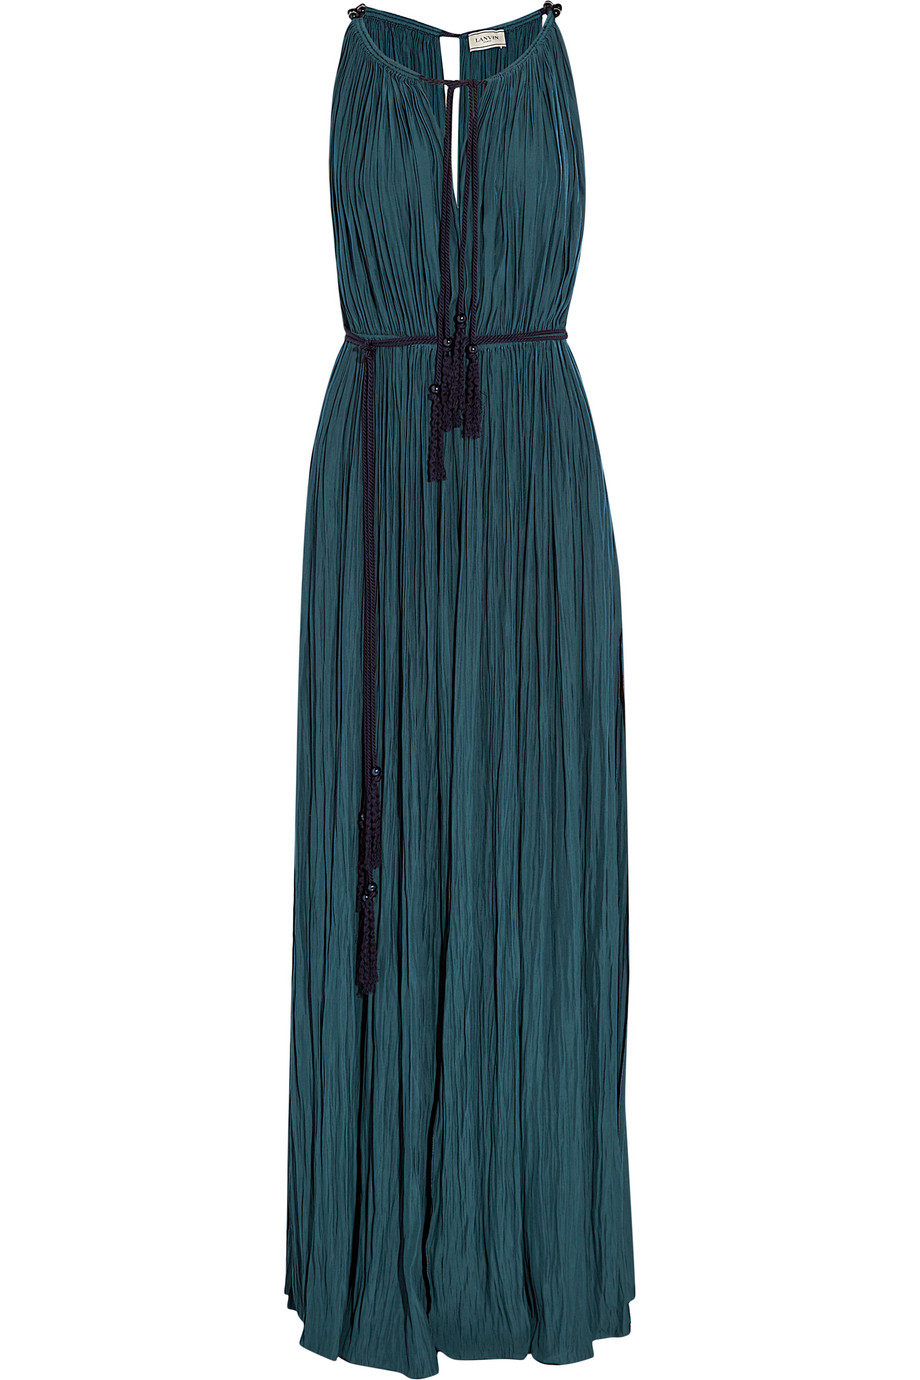 Lanvin Plissé Brushed-Satin Gown, Storm Blue, Women's, Size: 40